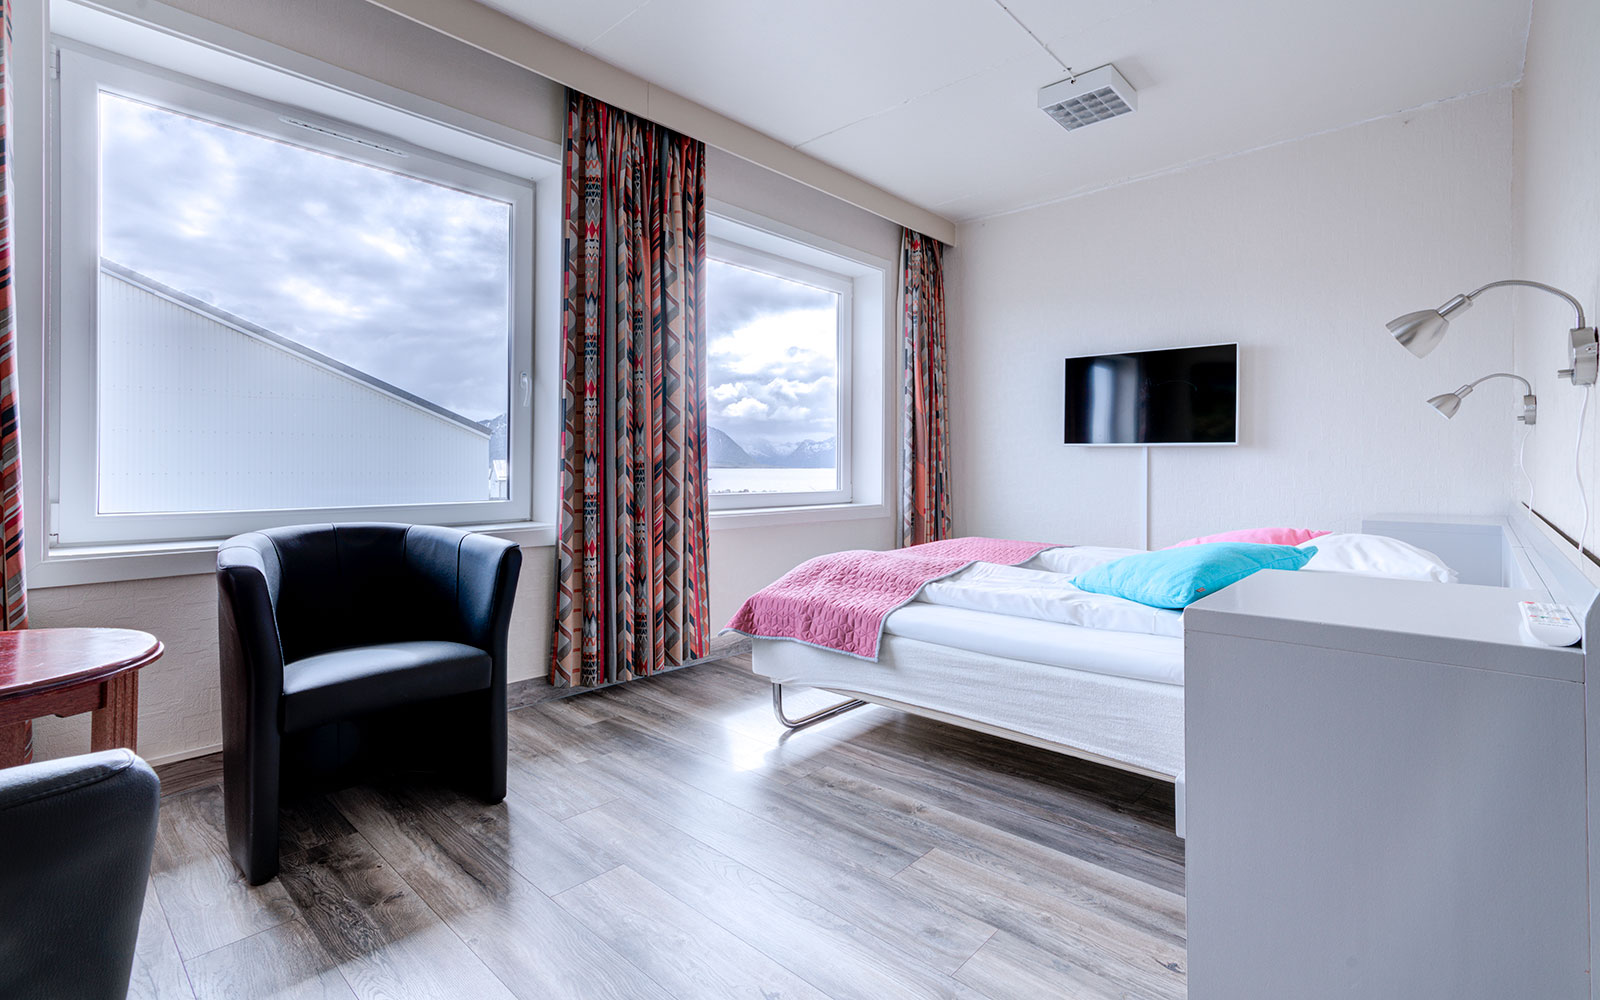 Melbu Hotell standard double room - beds